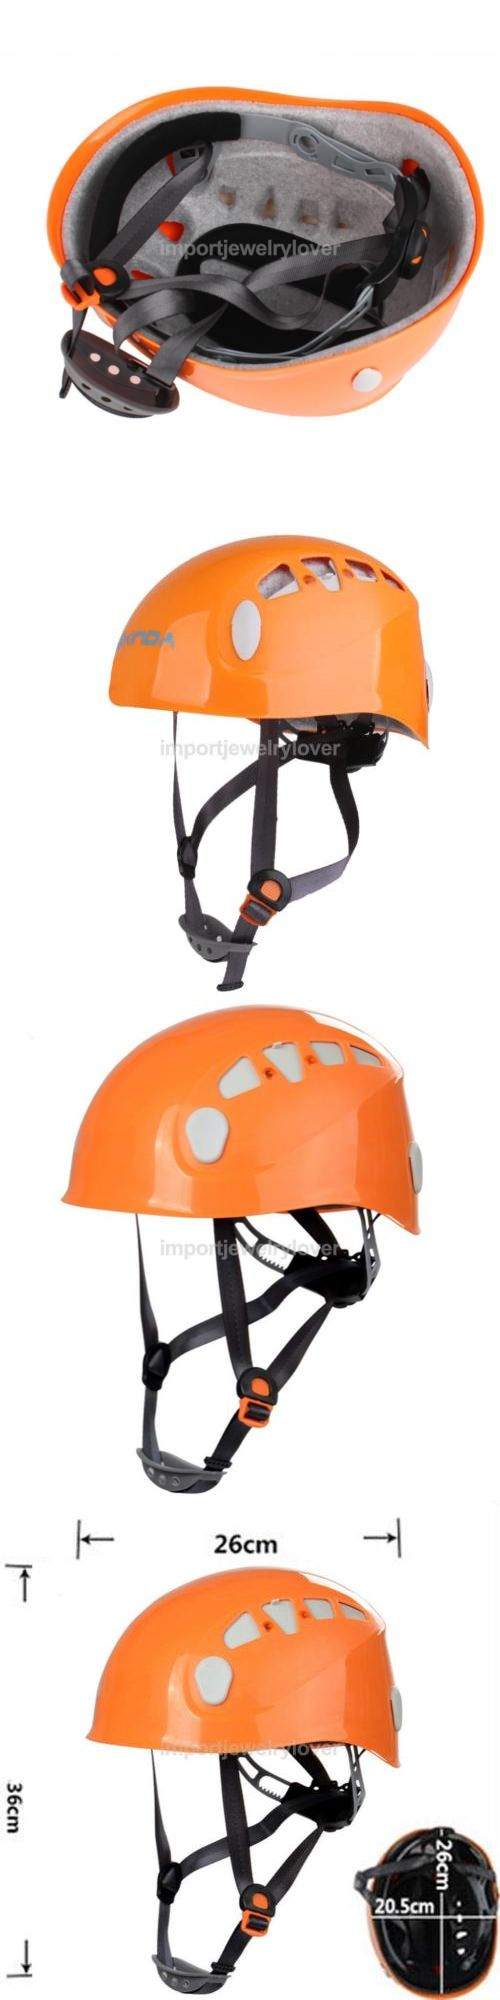 Other Climbing and Caving 1299: Rock Climbing Mountaineering Caving Rappelling Protector Helmet Safety Gear -> BUY IT NOW ONLY: $33.99 on eBay!